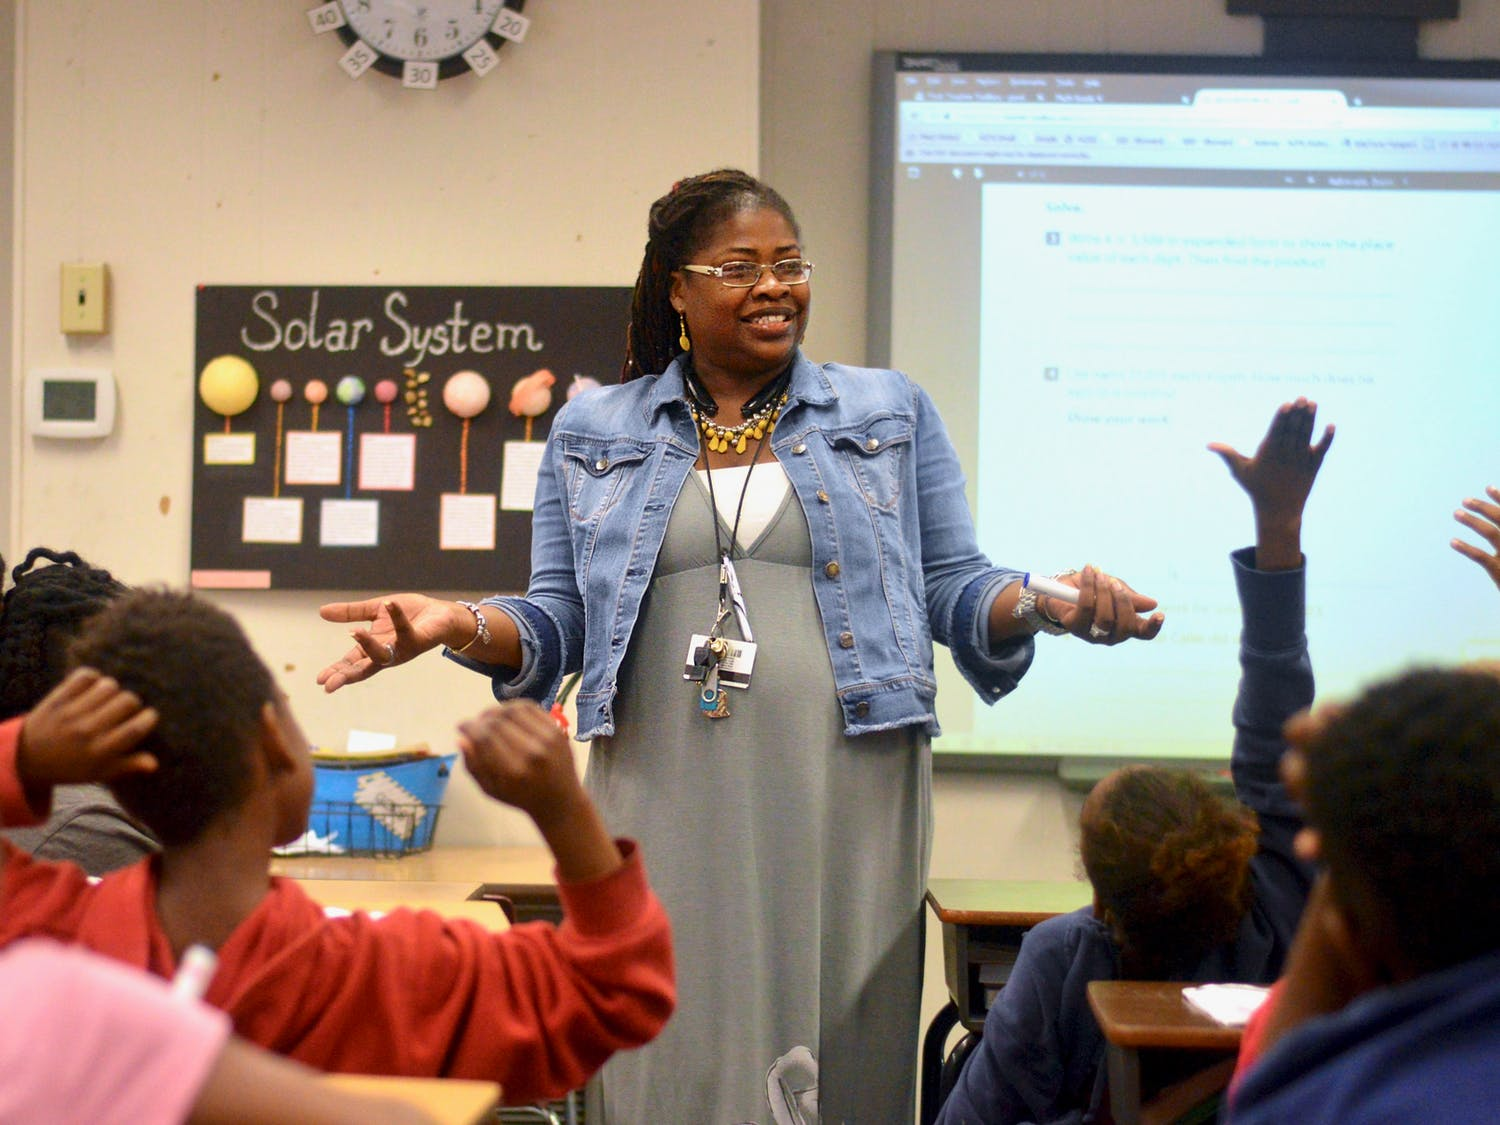 """[FILE PHOTO] 35-year-old Lilliemarie Gore leads students of Idylwild Elementary School through a series of math exercises. Mrs. Gore was awarded the title of """"2017-2018 Alachua County Teacher of the Year"""" earlier this month."""